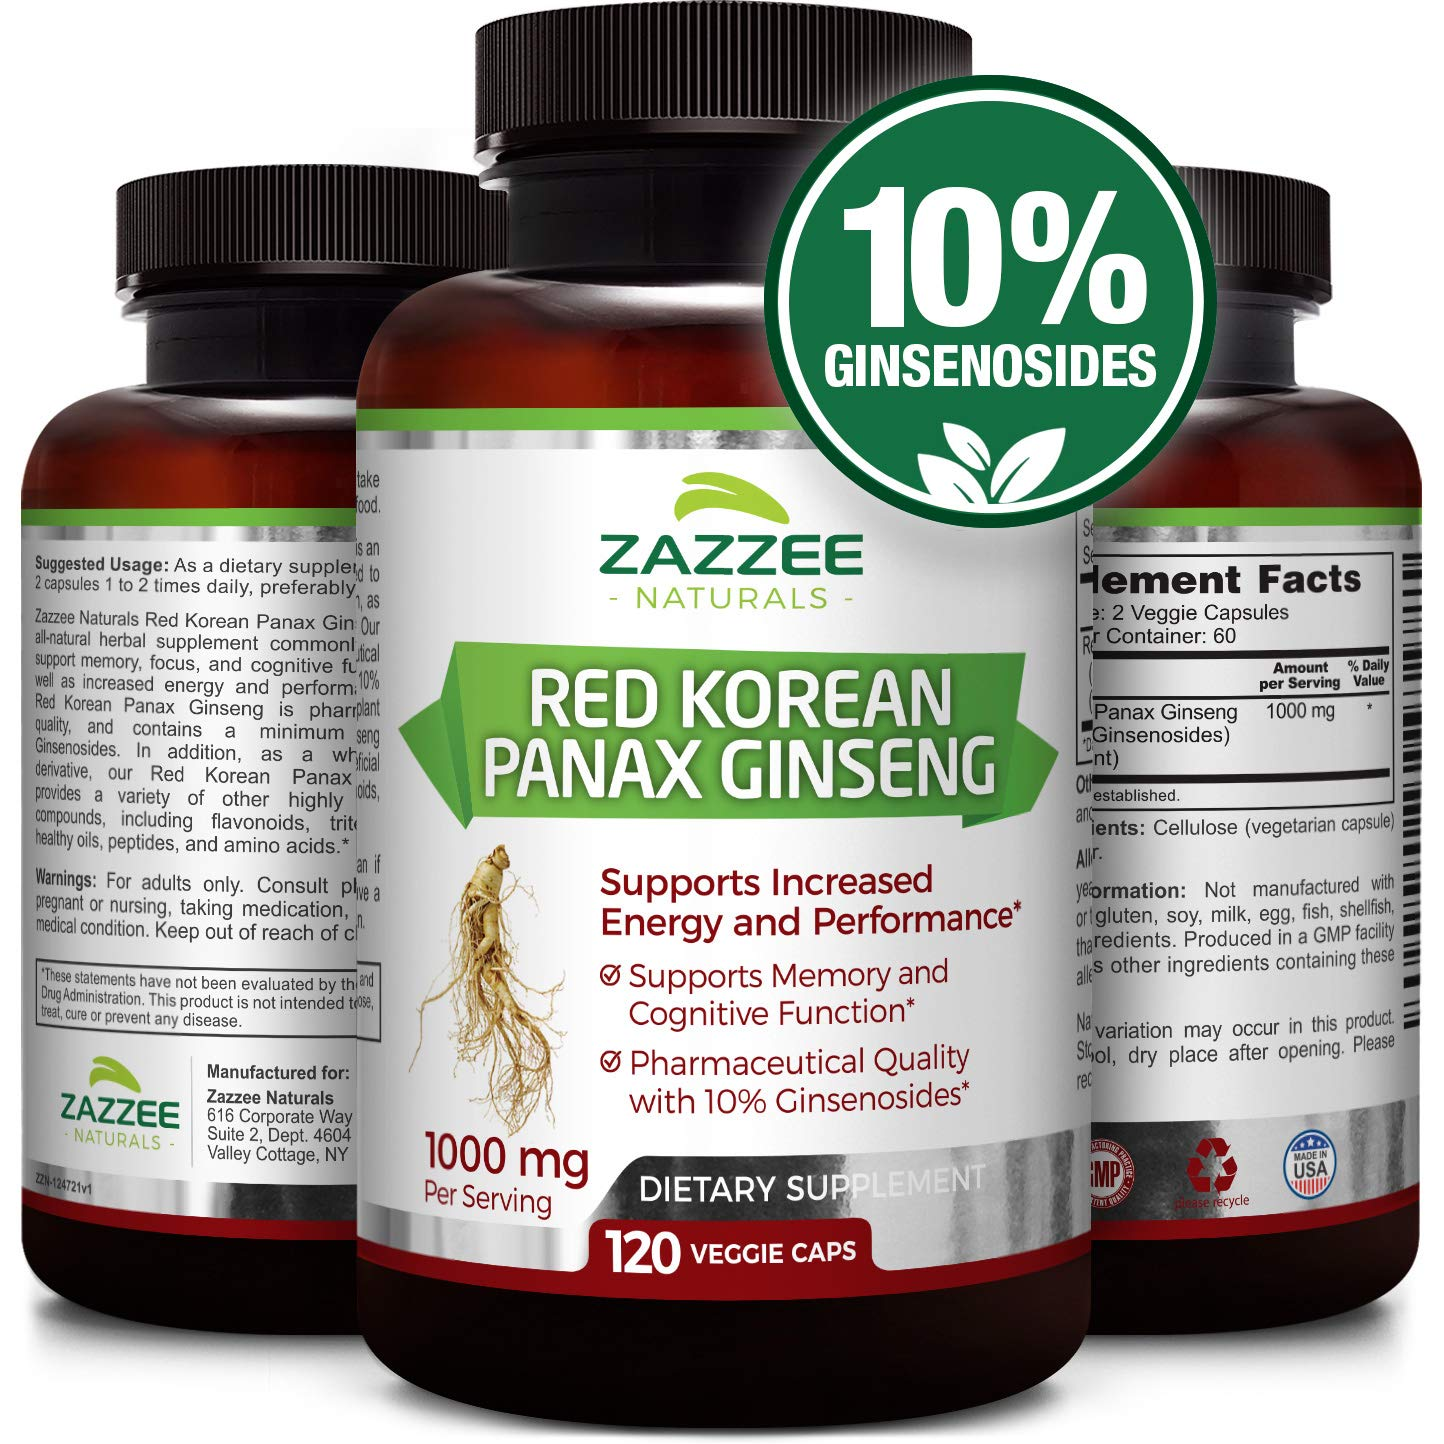 Red Korean Panax Ginseng | 10% Ginsenosides | Extra Strength | 1000 mg per Serving | 120 Veggie Caps | Vegan, Non-GMO and All-Natural | Premium Support for Energy, Performance and Cognitive Health